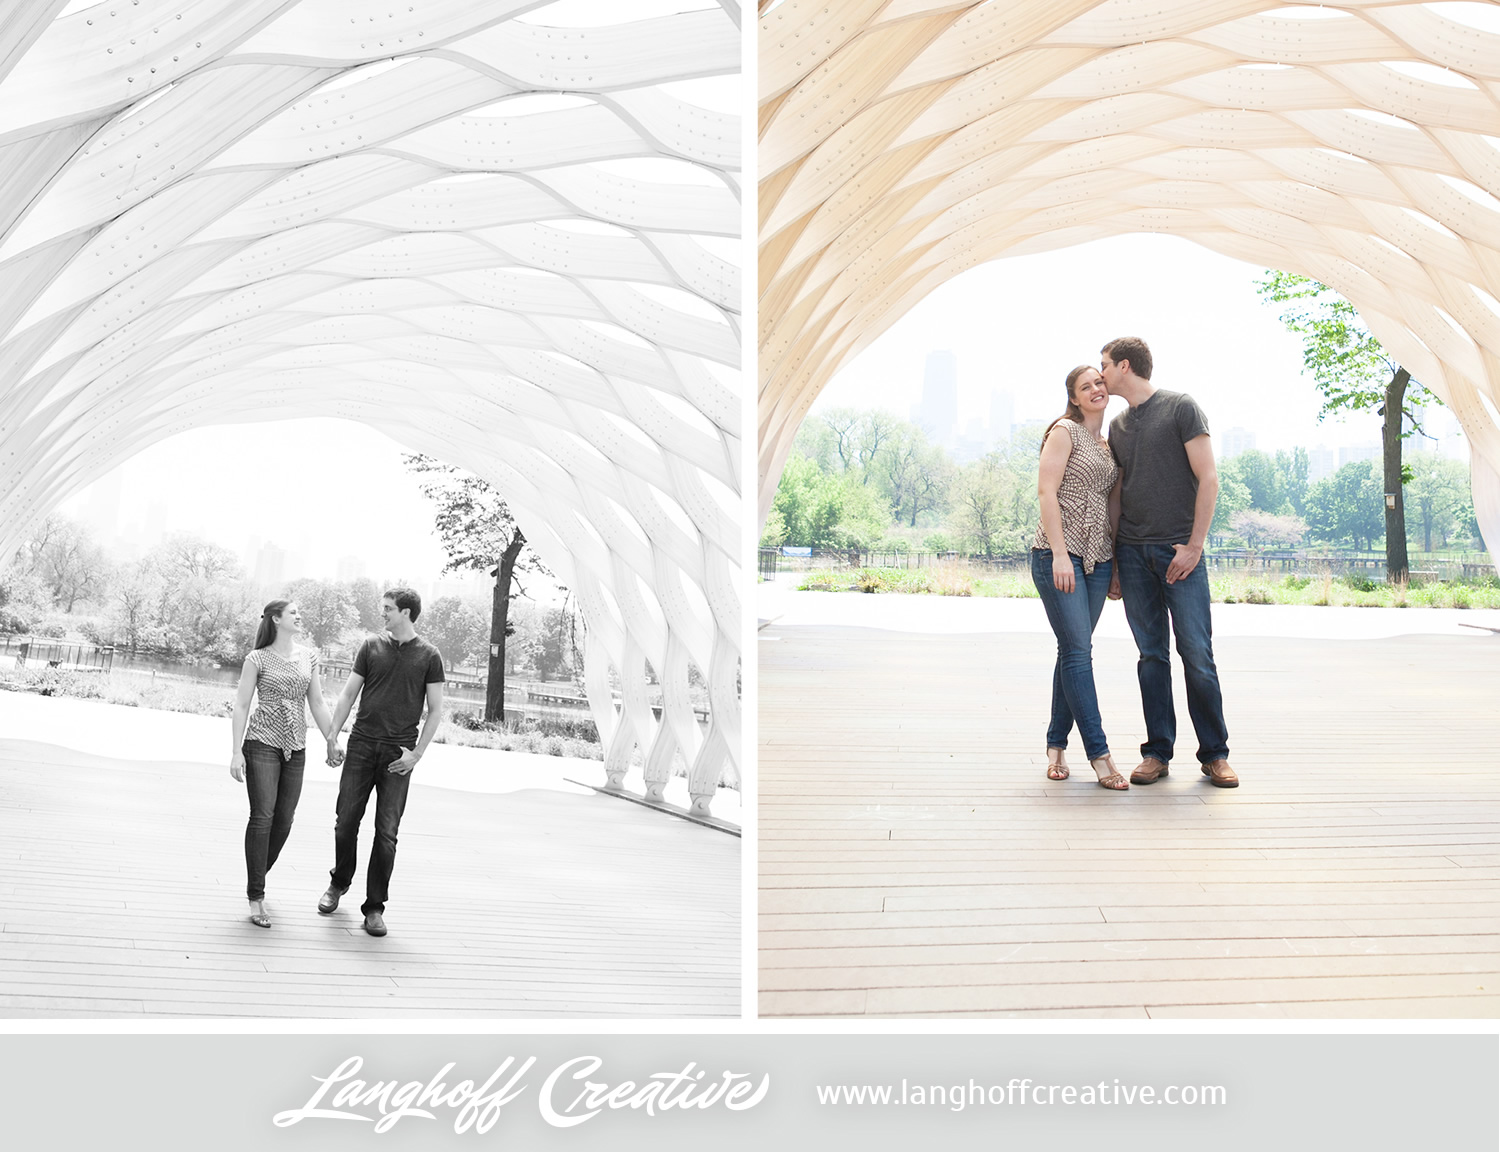 ChicagoEngagement-LincolnParkZoo-Engaged-LanghoffCreative-DestinationWeddingPhotographers-2014-ZacRachel-11-photo.jpg